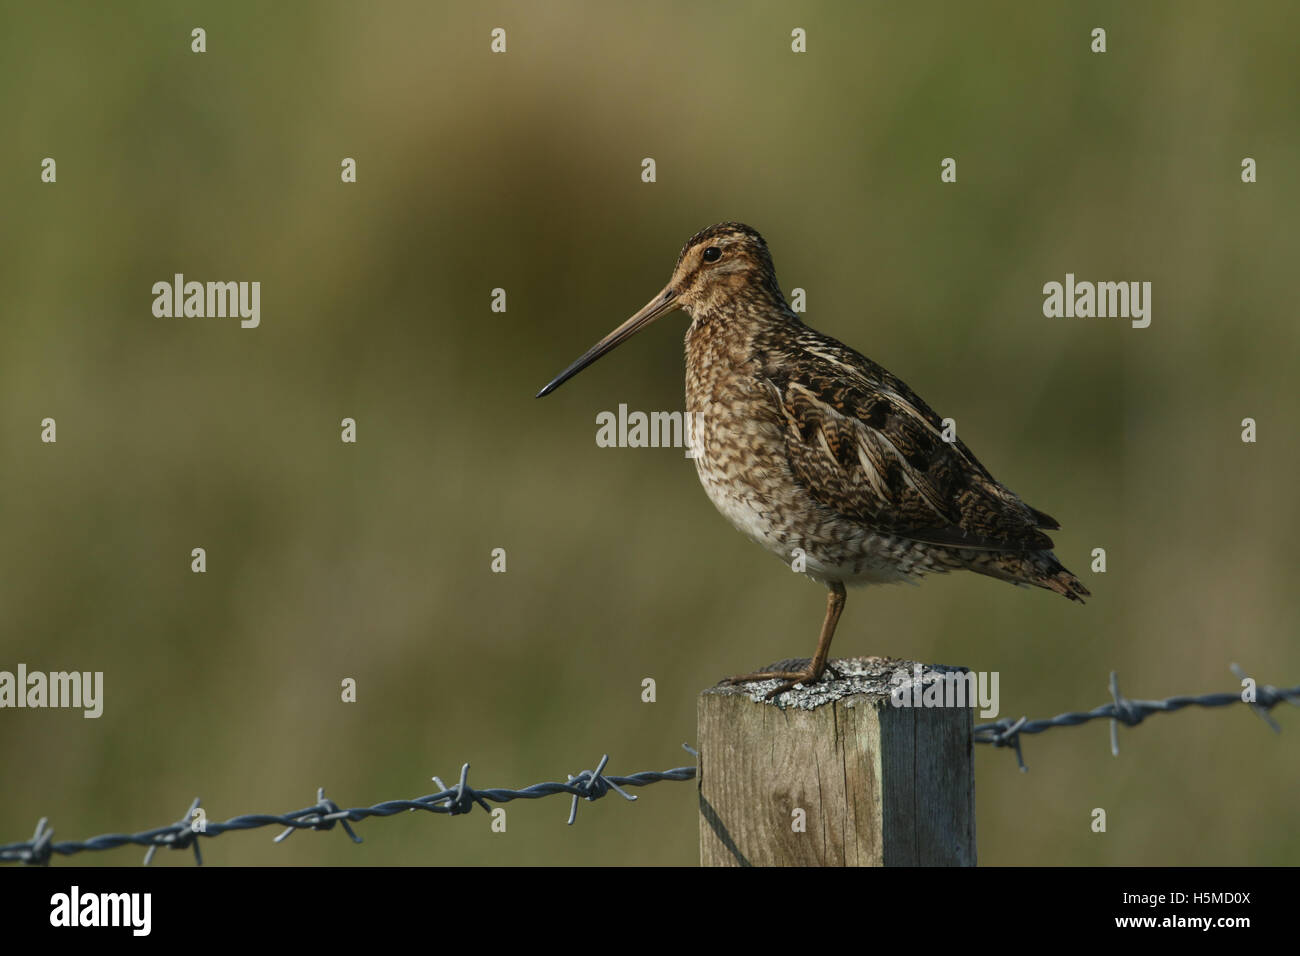 A Snipe (Gallinago gallinago) perched on a post . - Stock Image